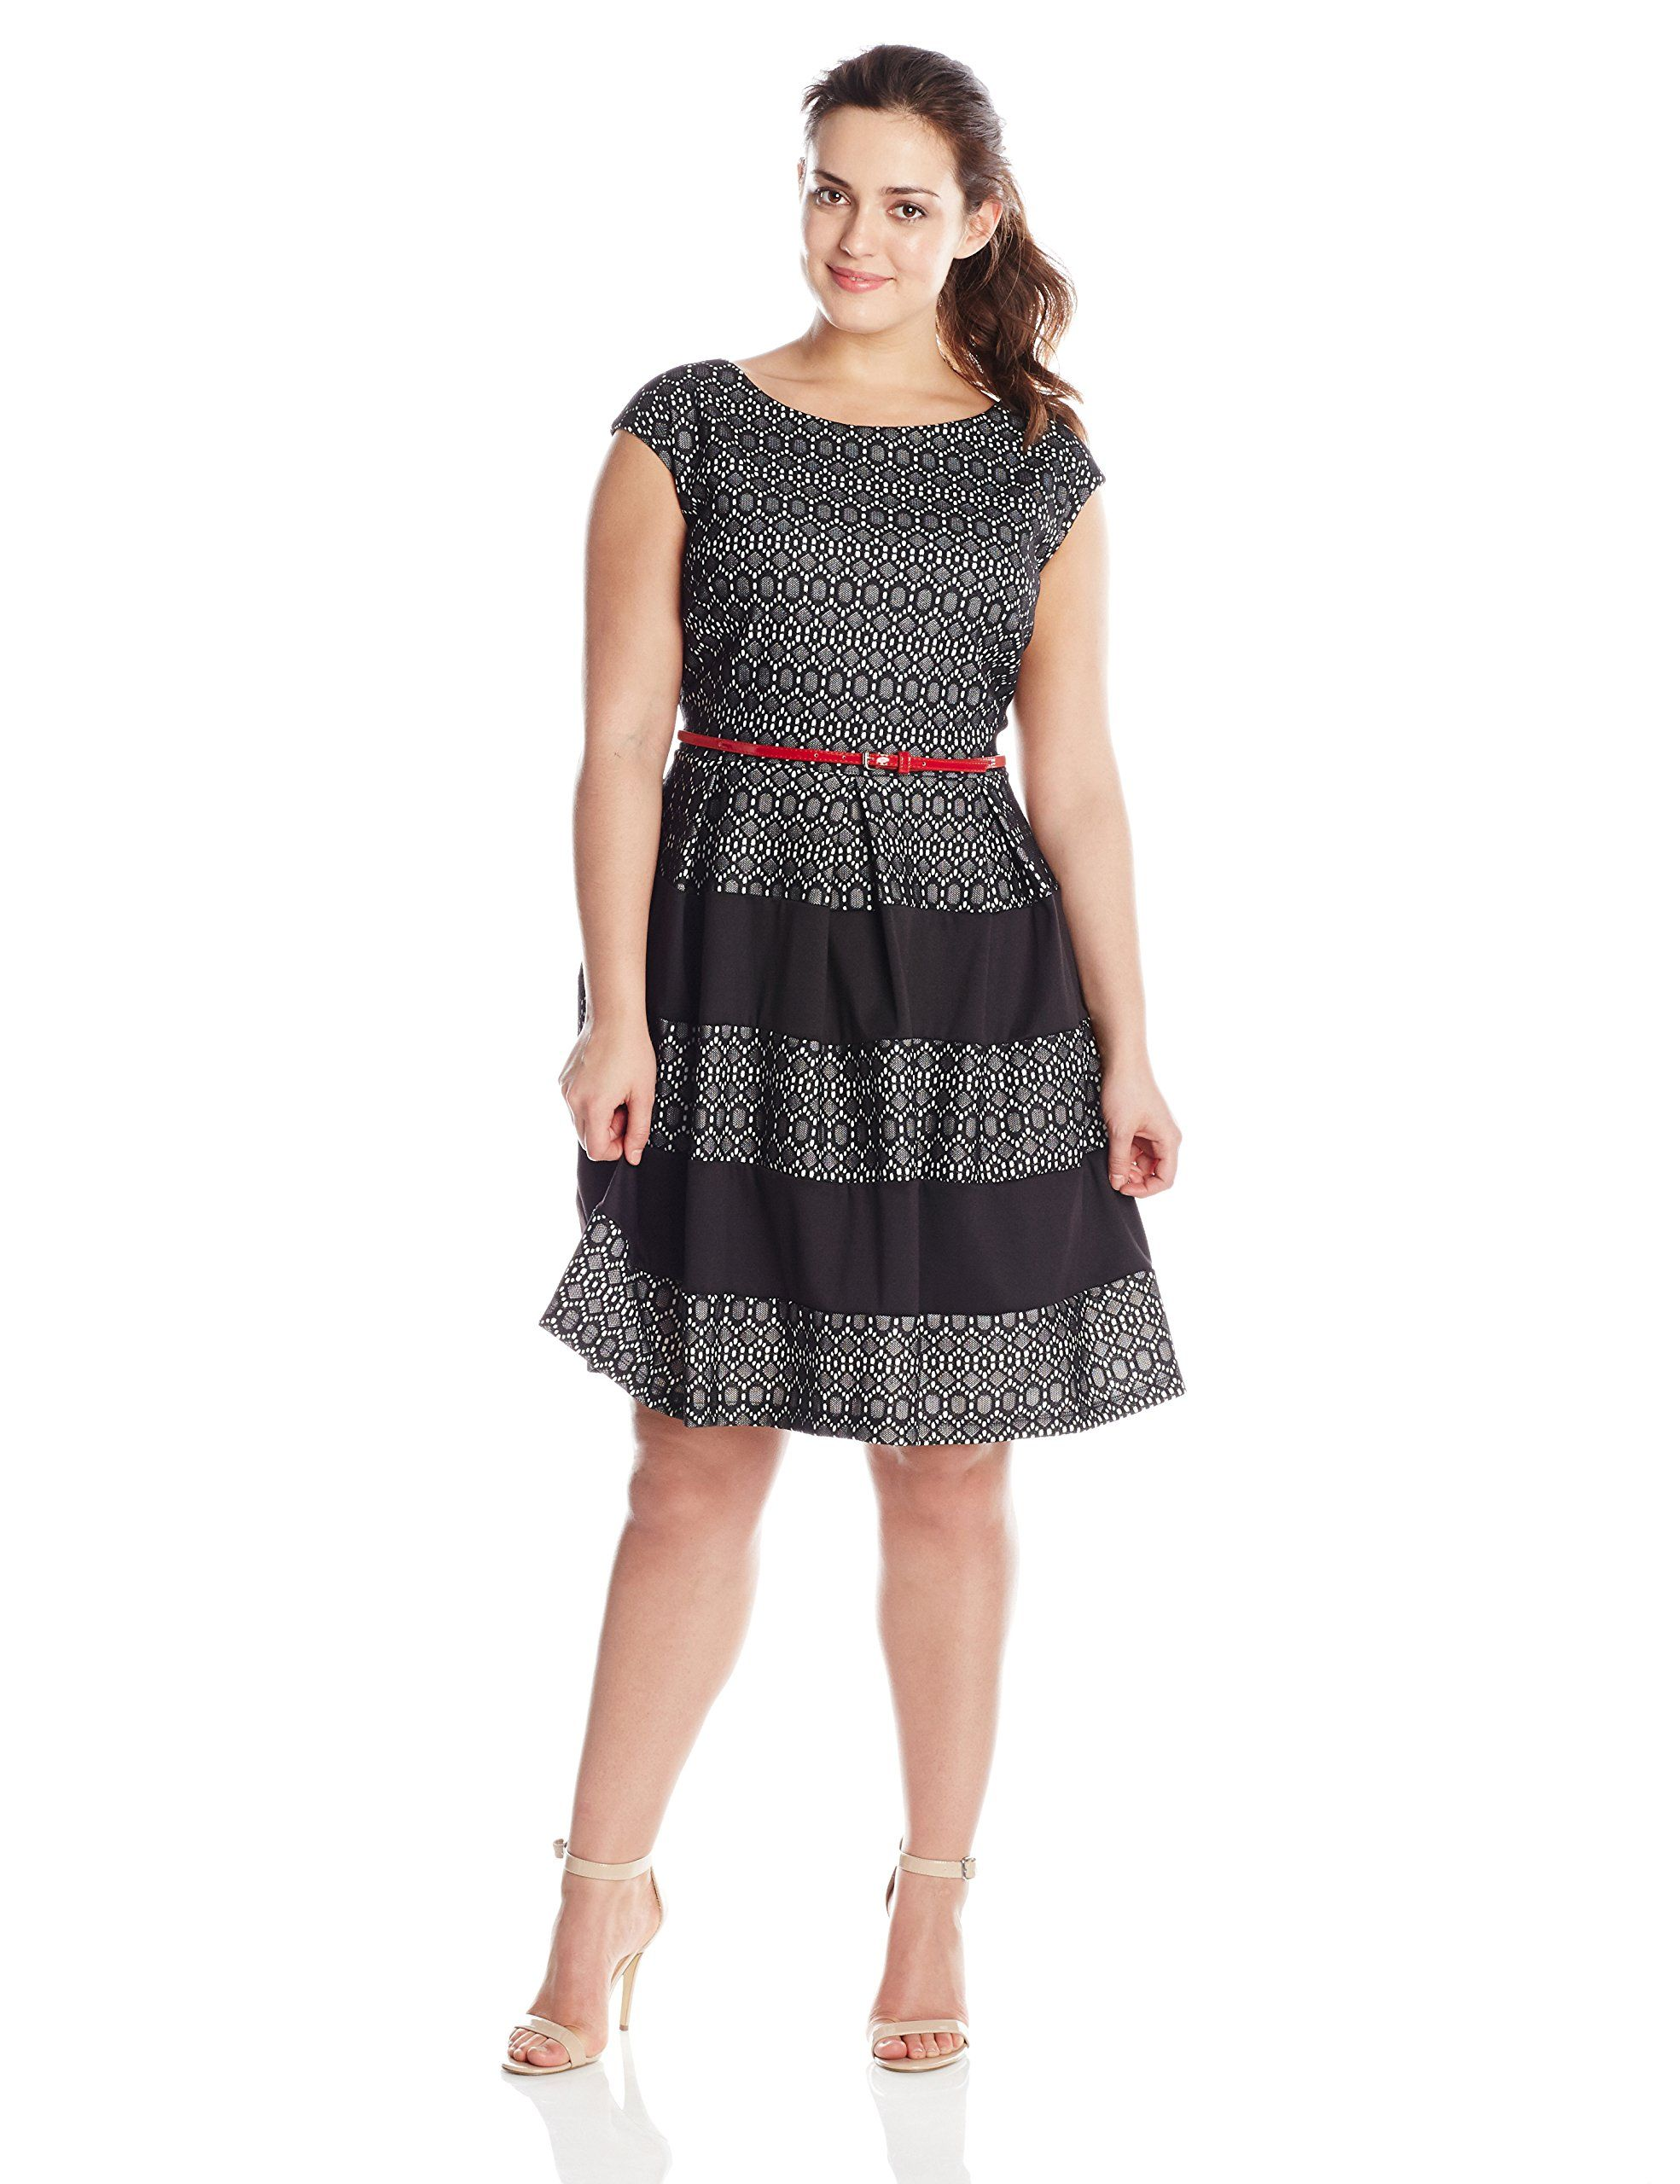 4c3ac04d112 Tiana B Women s Plus-Size Cap Sleeve Lace Fit and Flare Dress